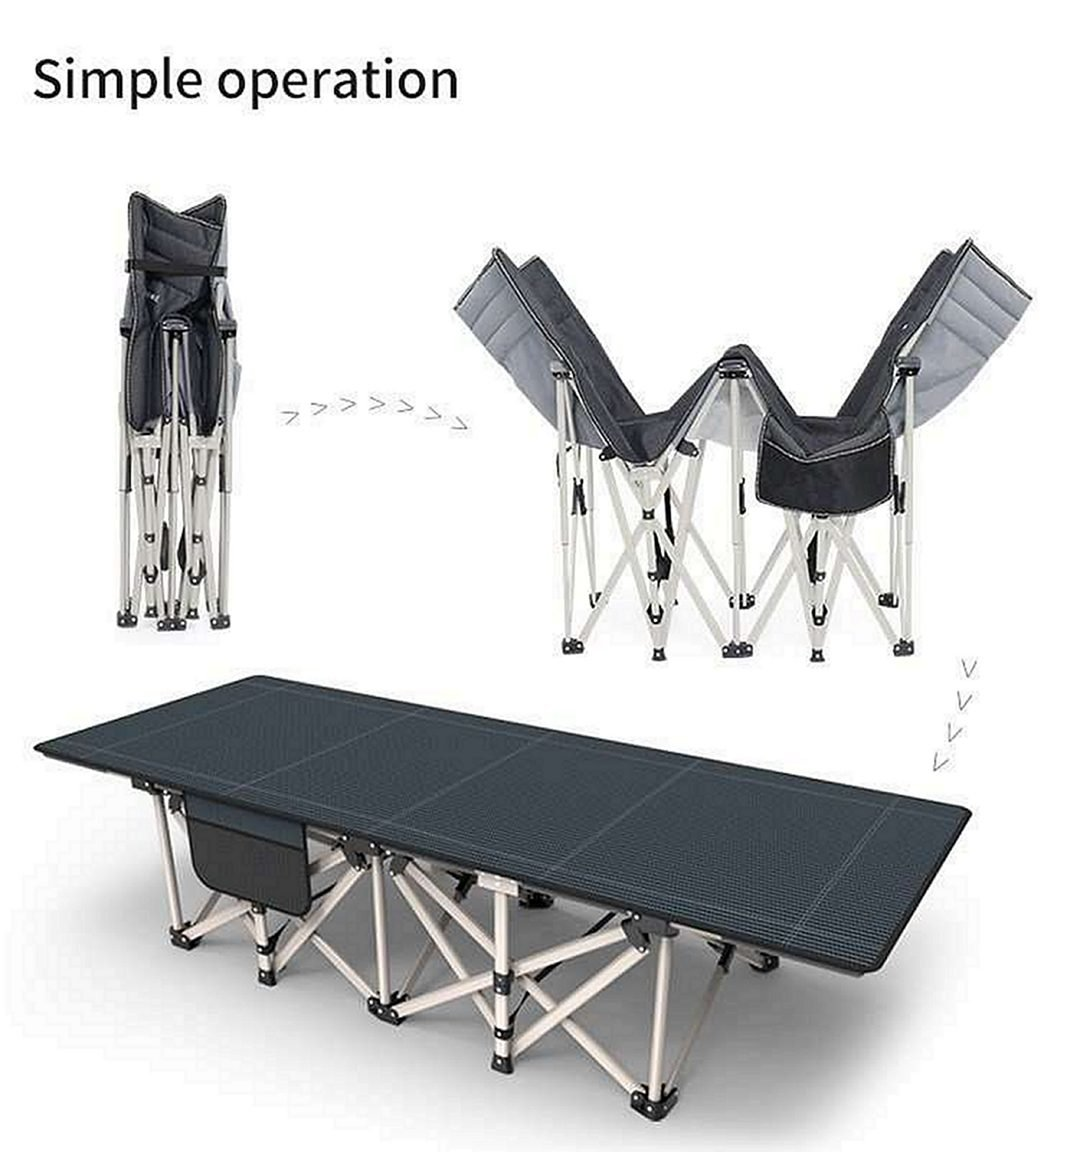 Camping Cot Unfolding Process